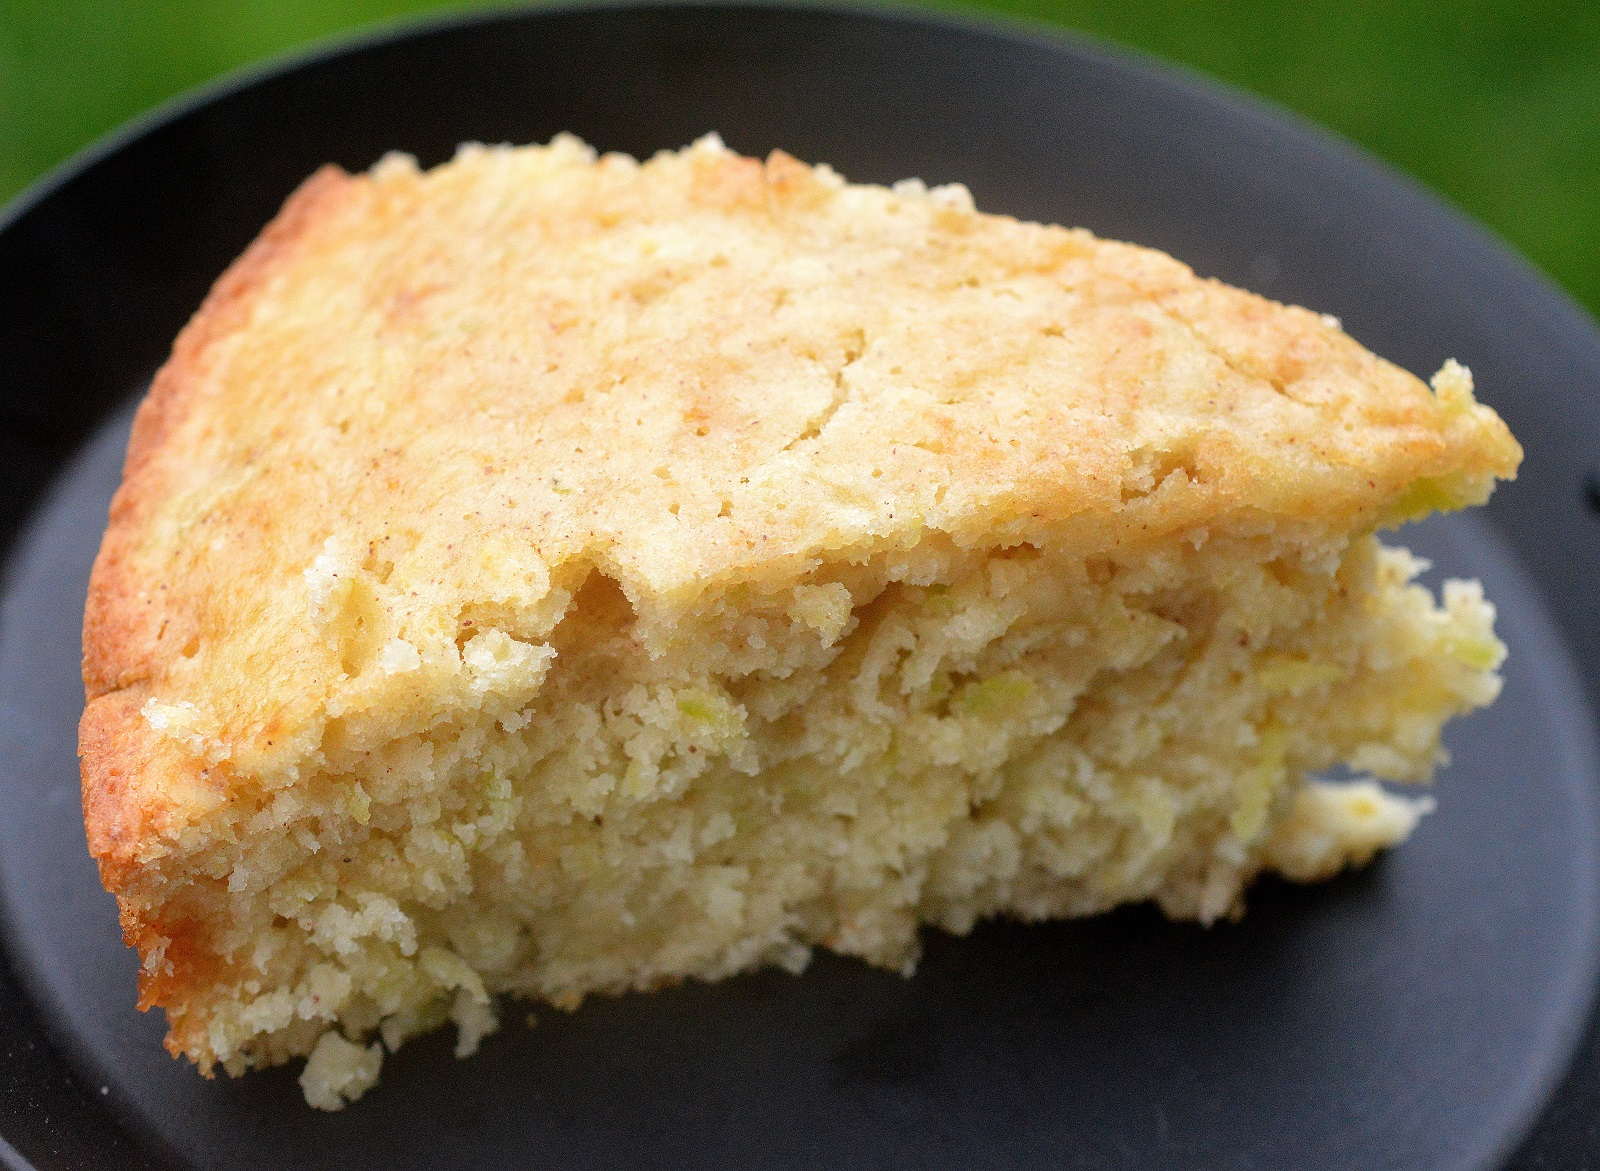 Skillet Zucchini Yogurt Cake. Sweet and moist...Delicious!